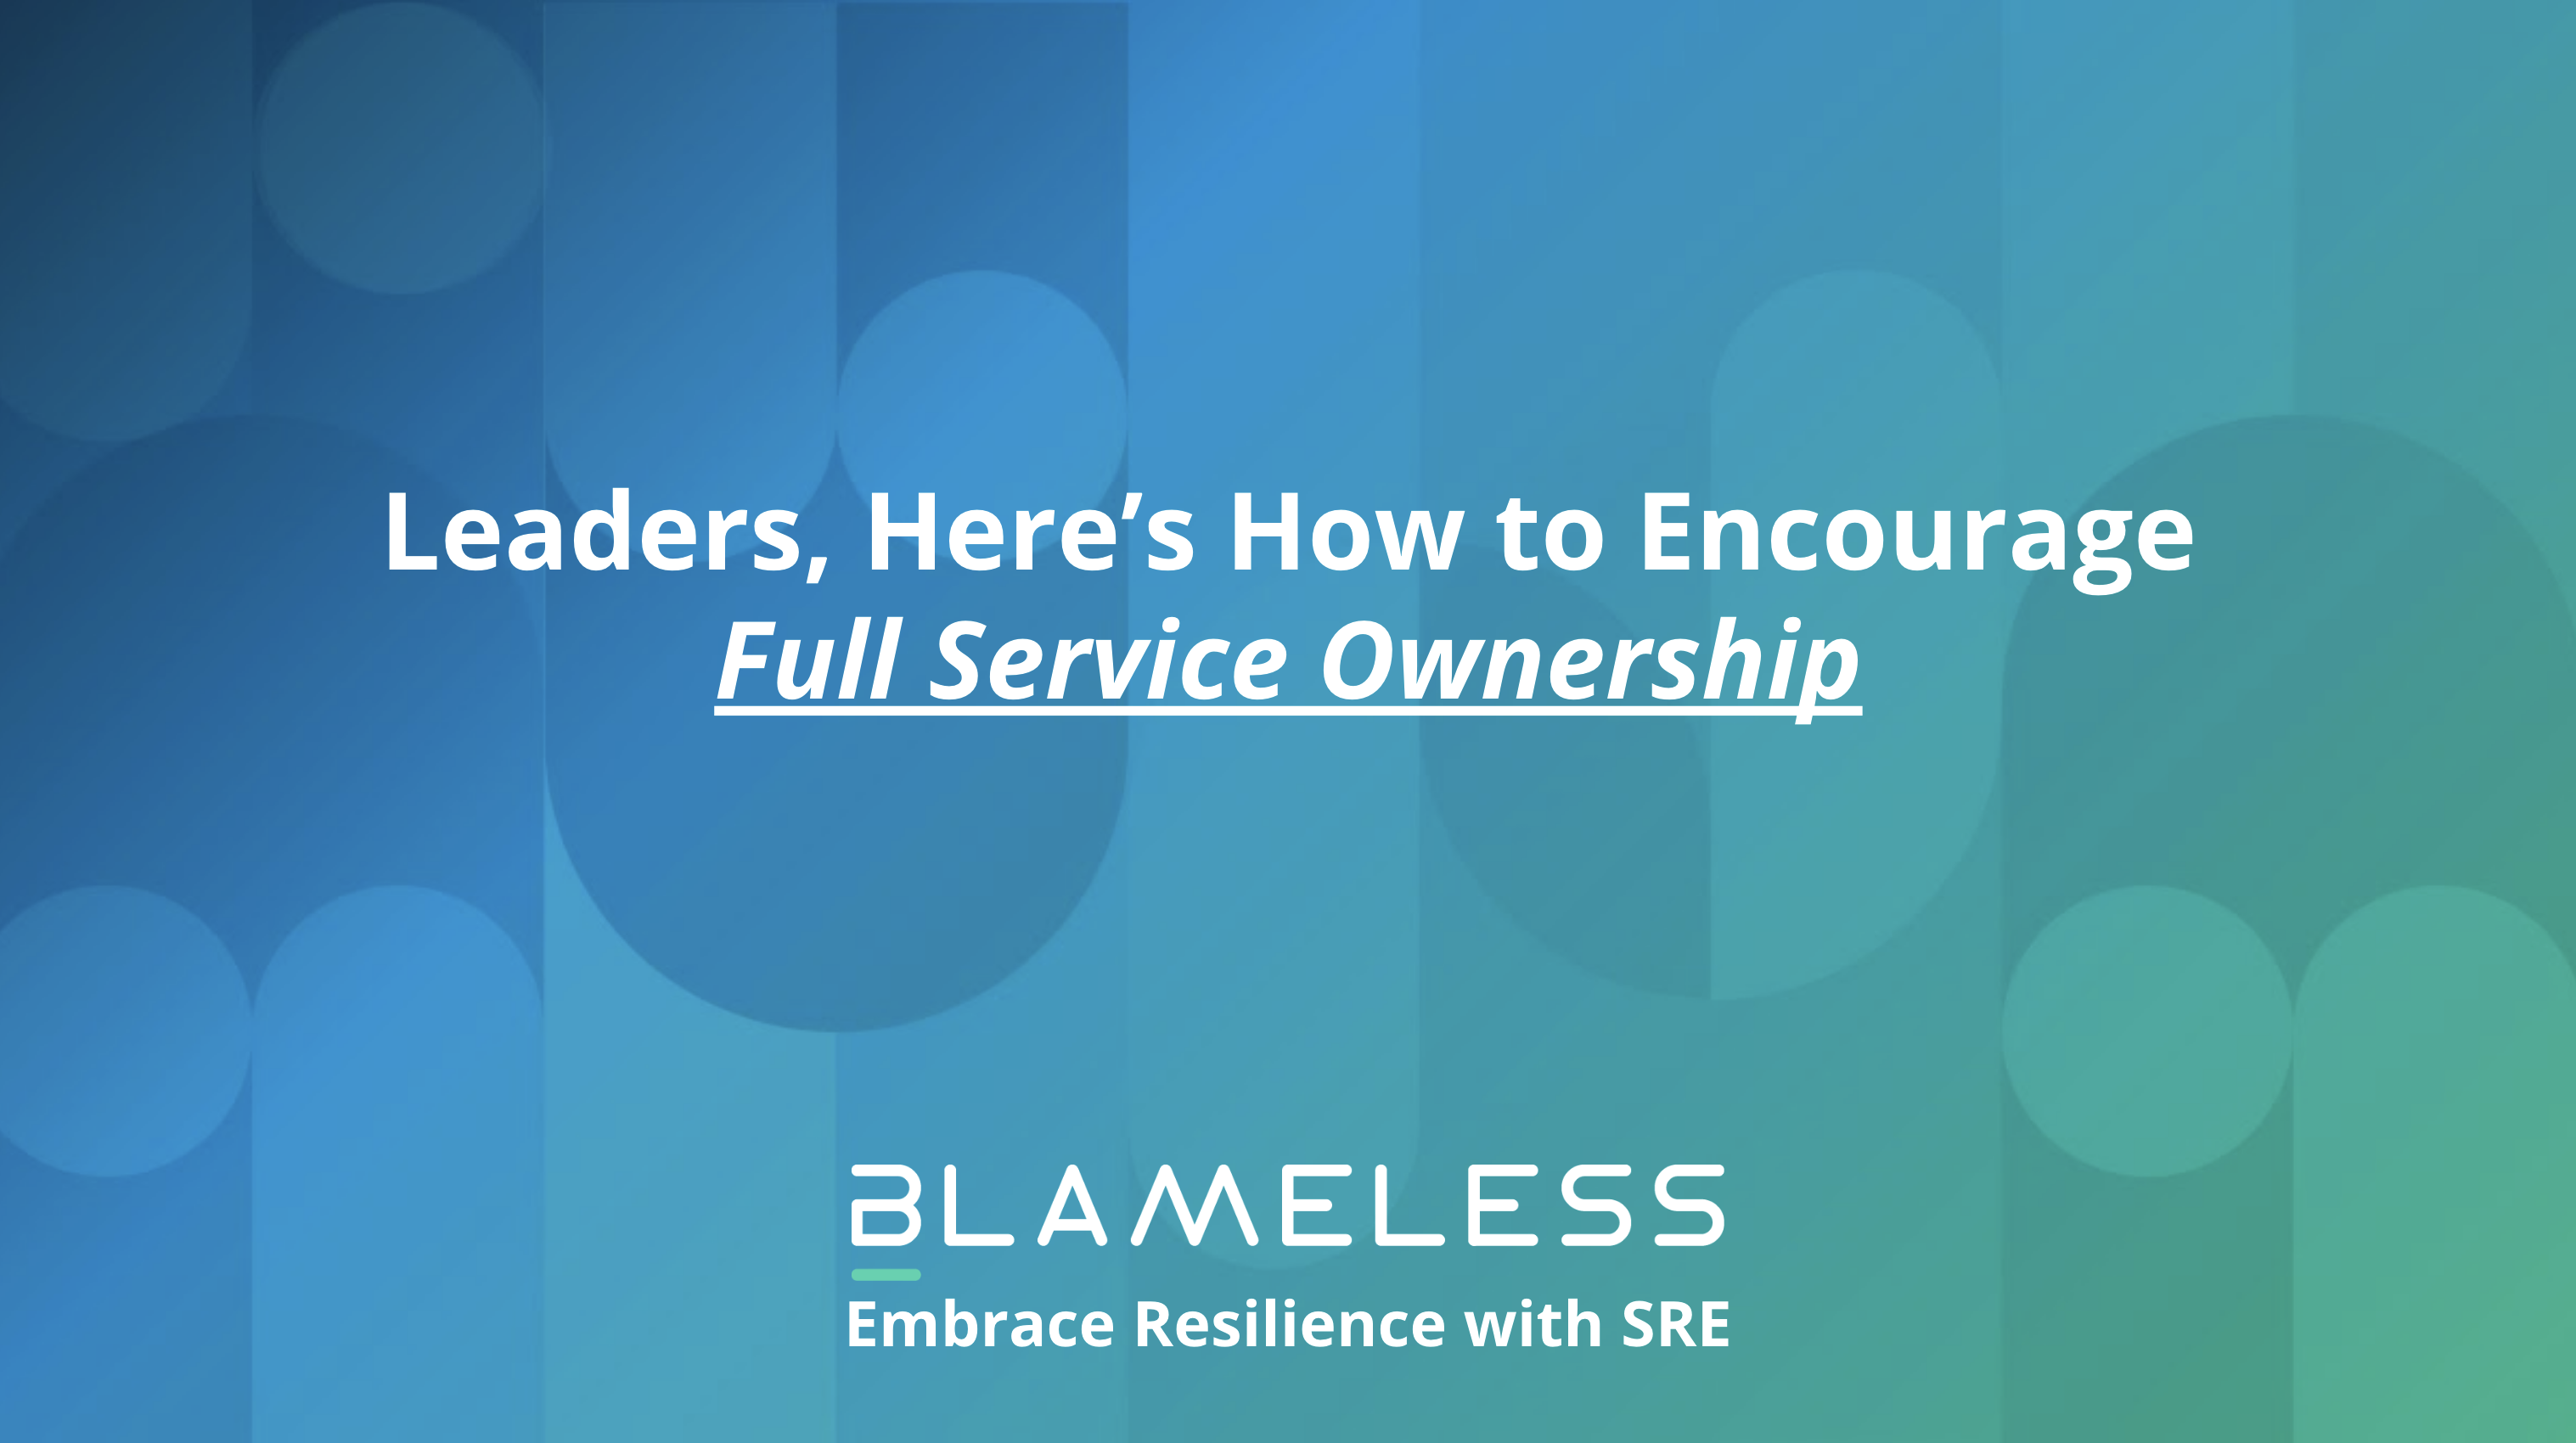 Leaders, Here's how to Encourage Full Service Ownership